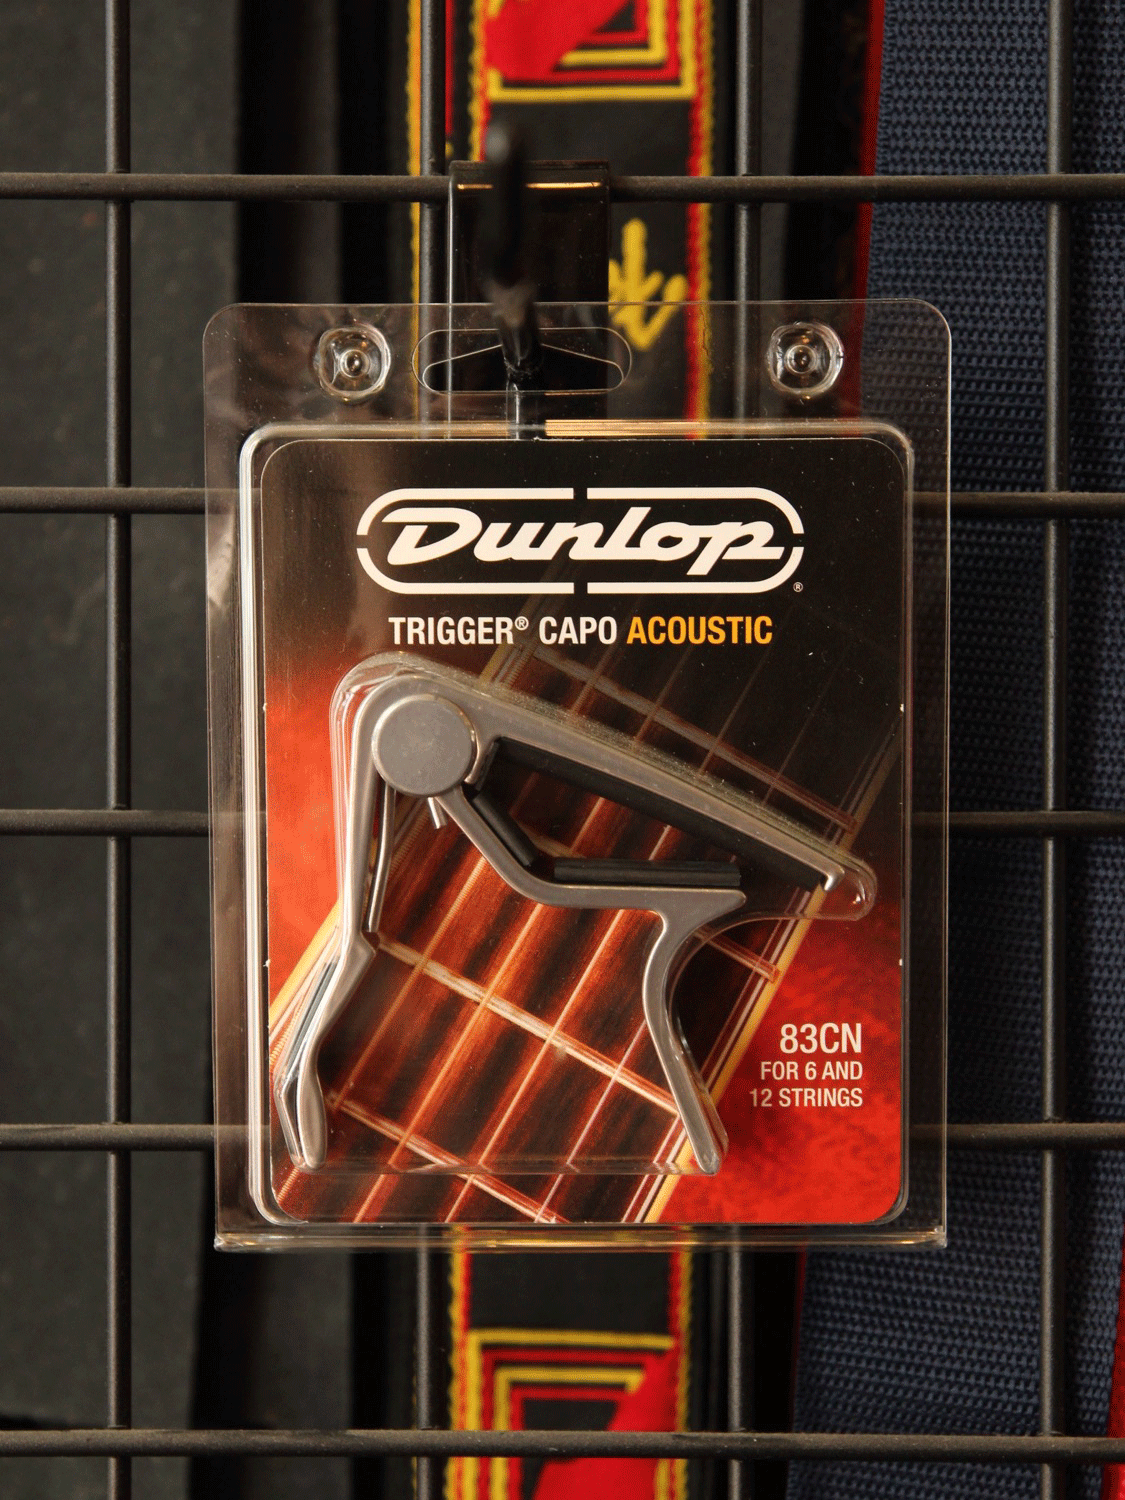 Capo - Dunlop Trigger Capo Acoustic - The Rock Inn